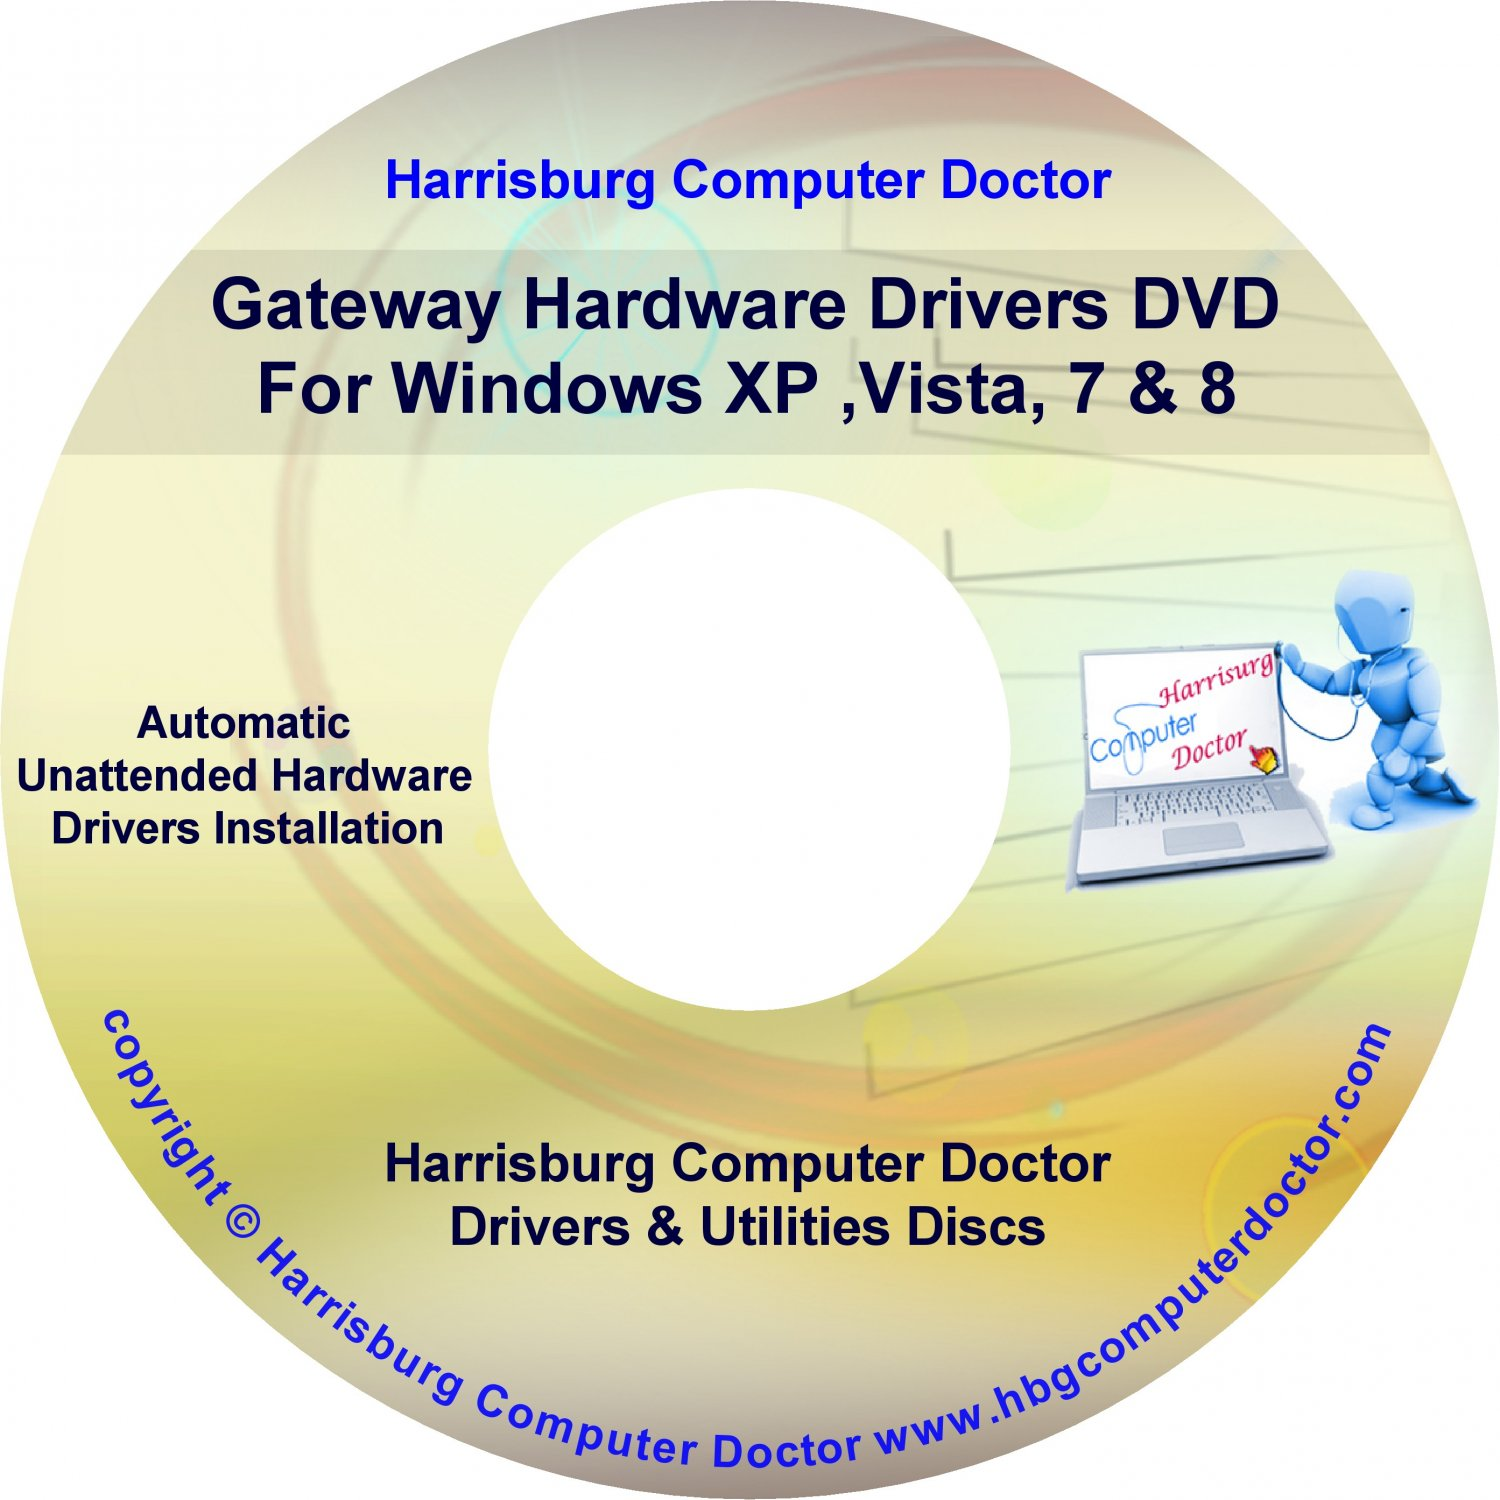 Gateway S-7200N Drivers DVD For Windows, XP, Vista, 7 & 8